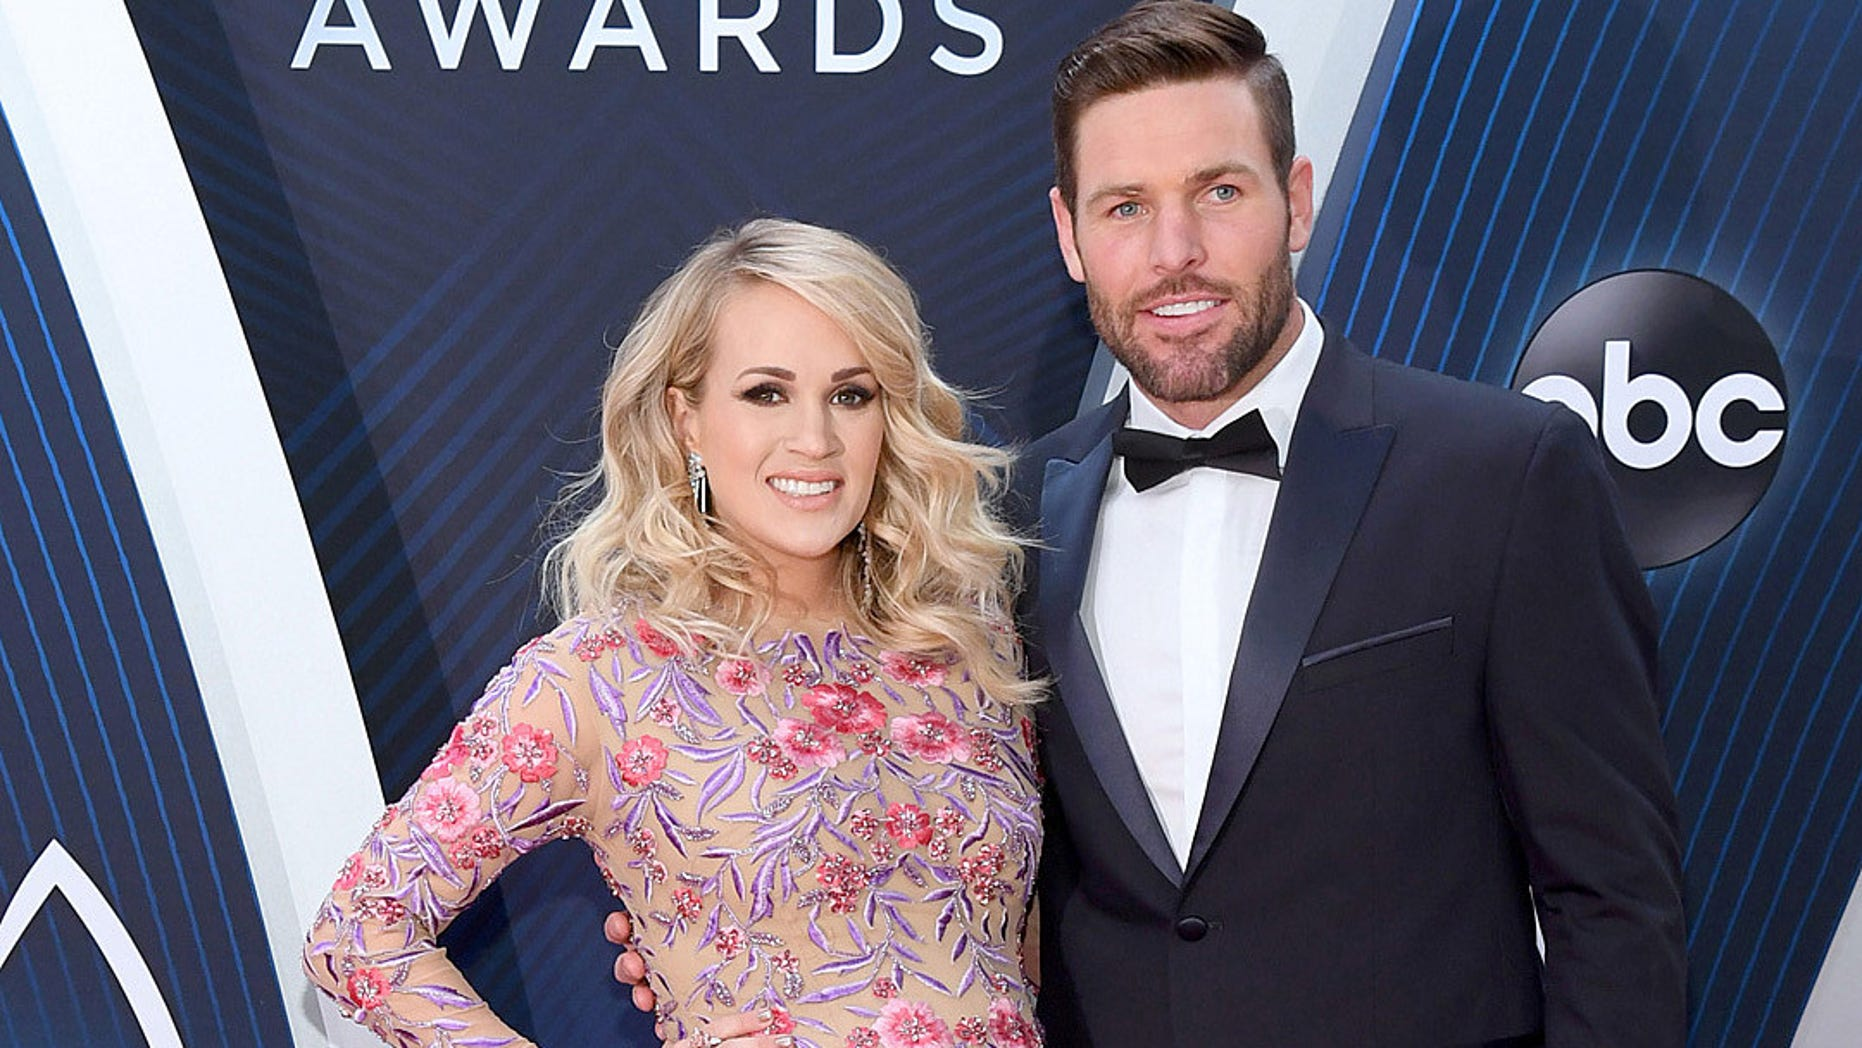 Carrie Underwood and husband Mike Fisher attend the 2018CMA Awards.